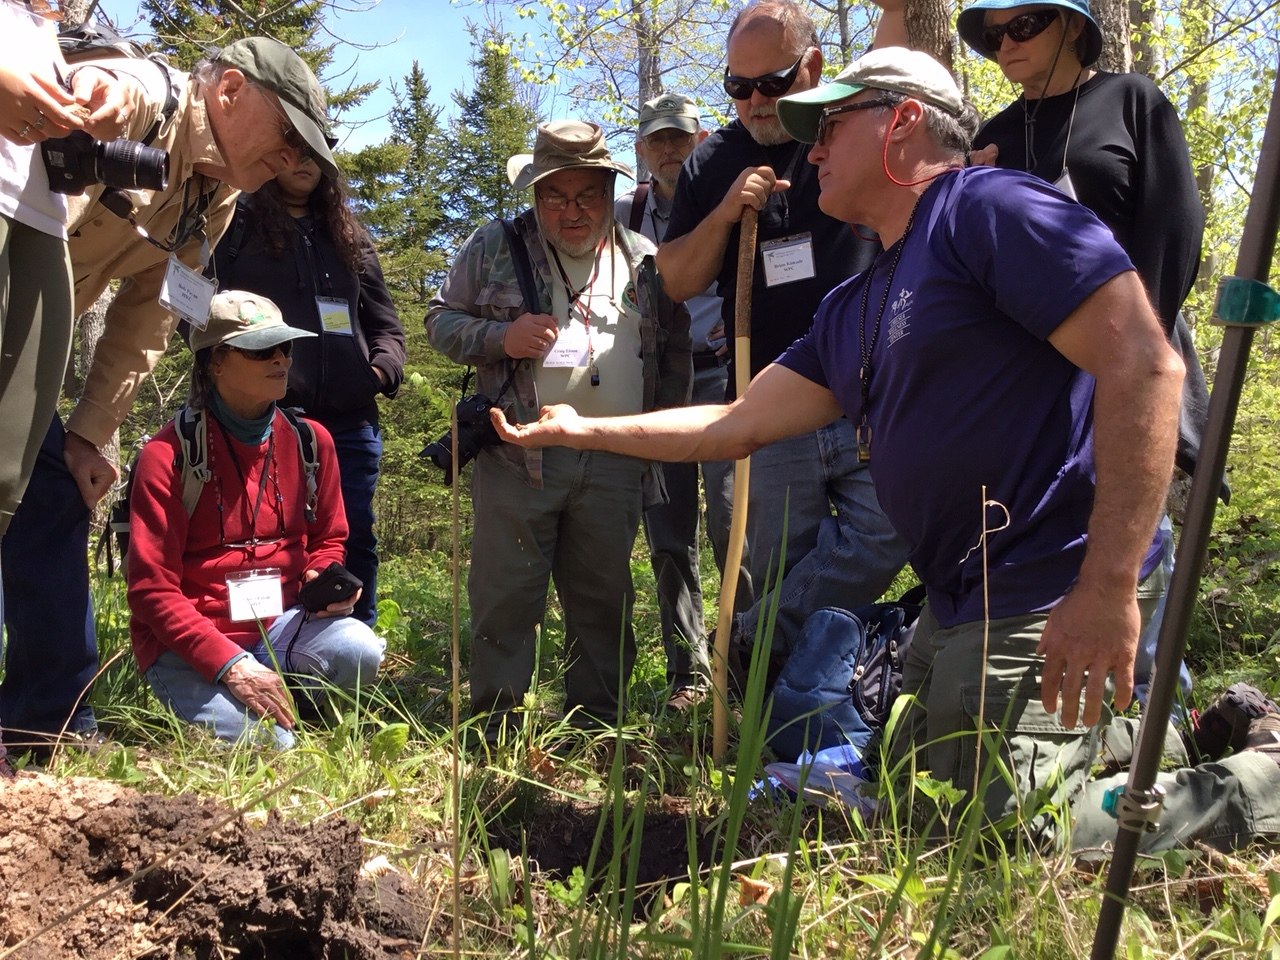 Robert Ayotte showing clay in a soil pit